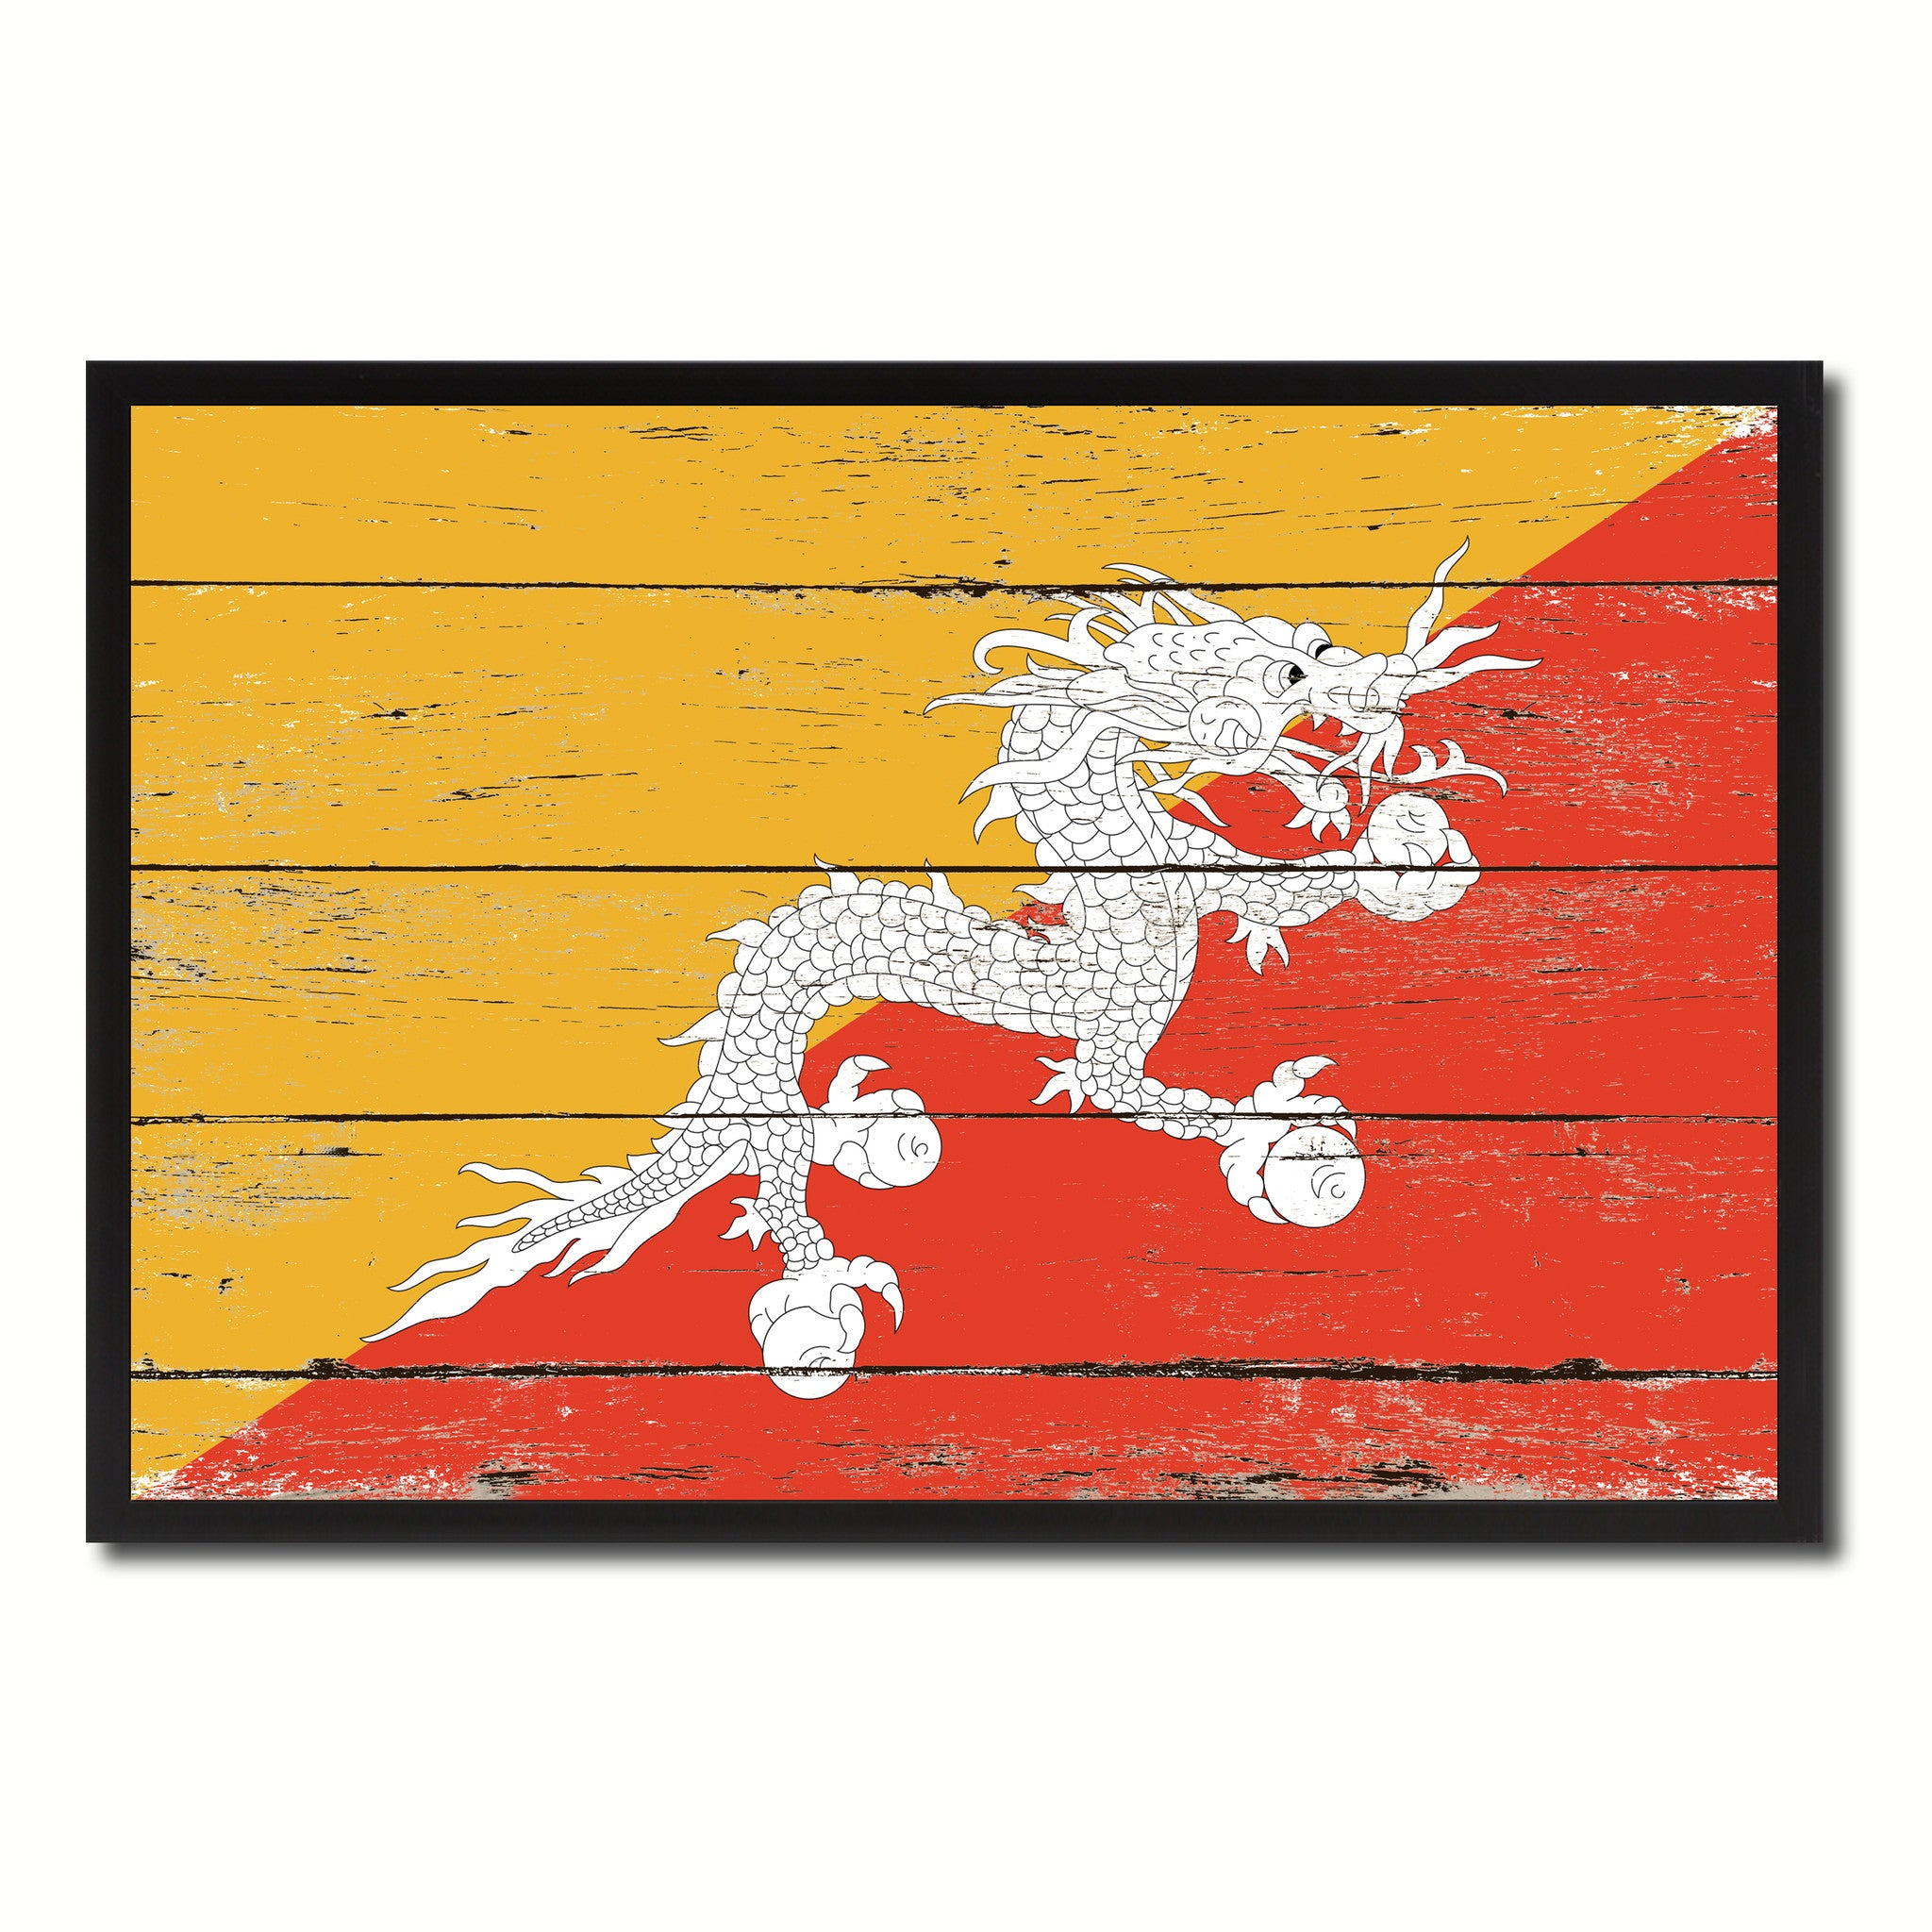 Bhutan Country National Flag Vintage Canvas Print with Picture Frame Home Decor Wall Art Collection Gift Ideas